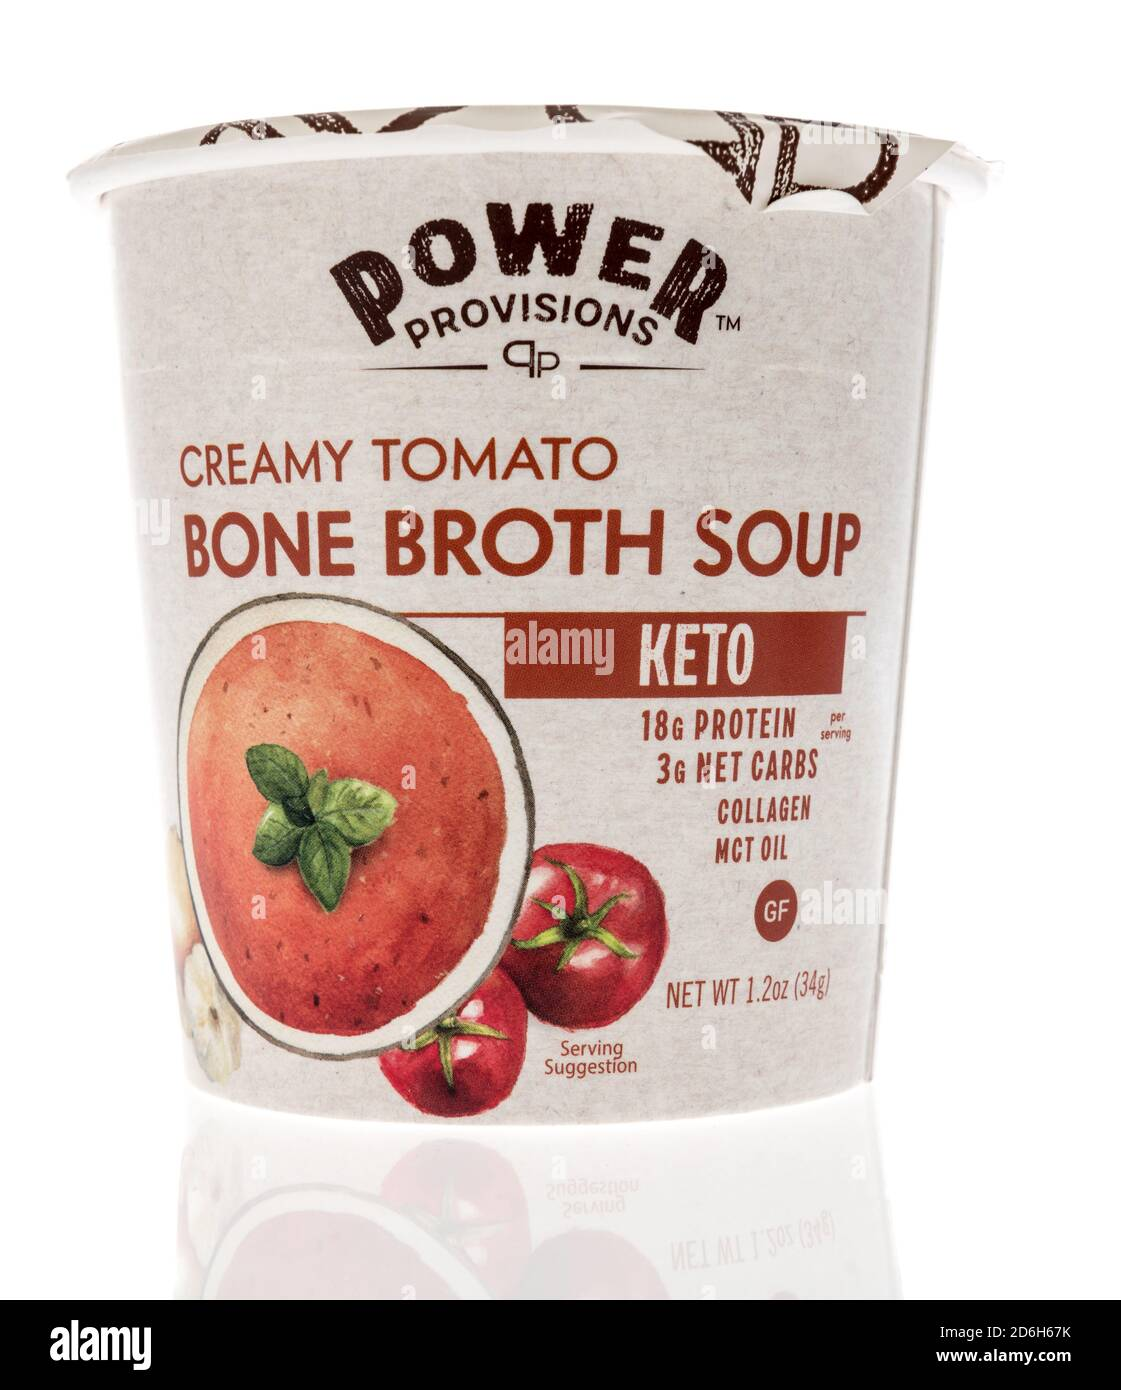 Winneconne, WI - 16 October 2020:  A package of Power provisions creamy tomato bone broth soup on an isolated background. Stock Photo